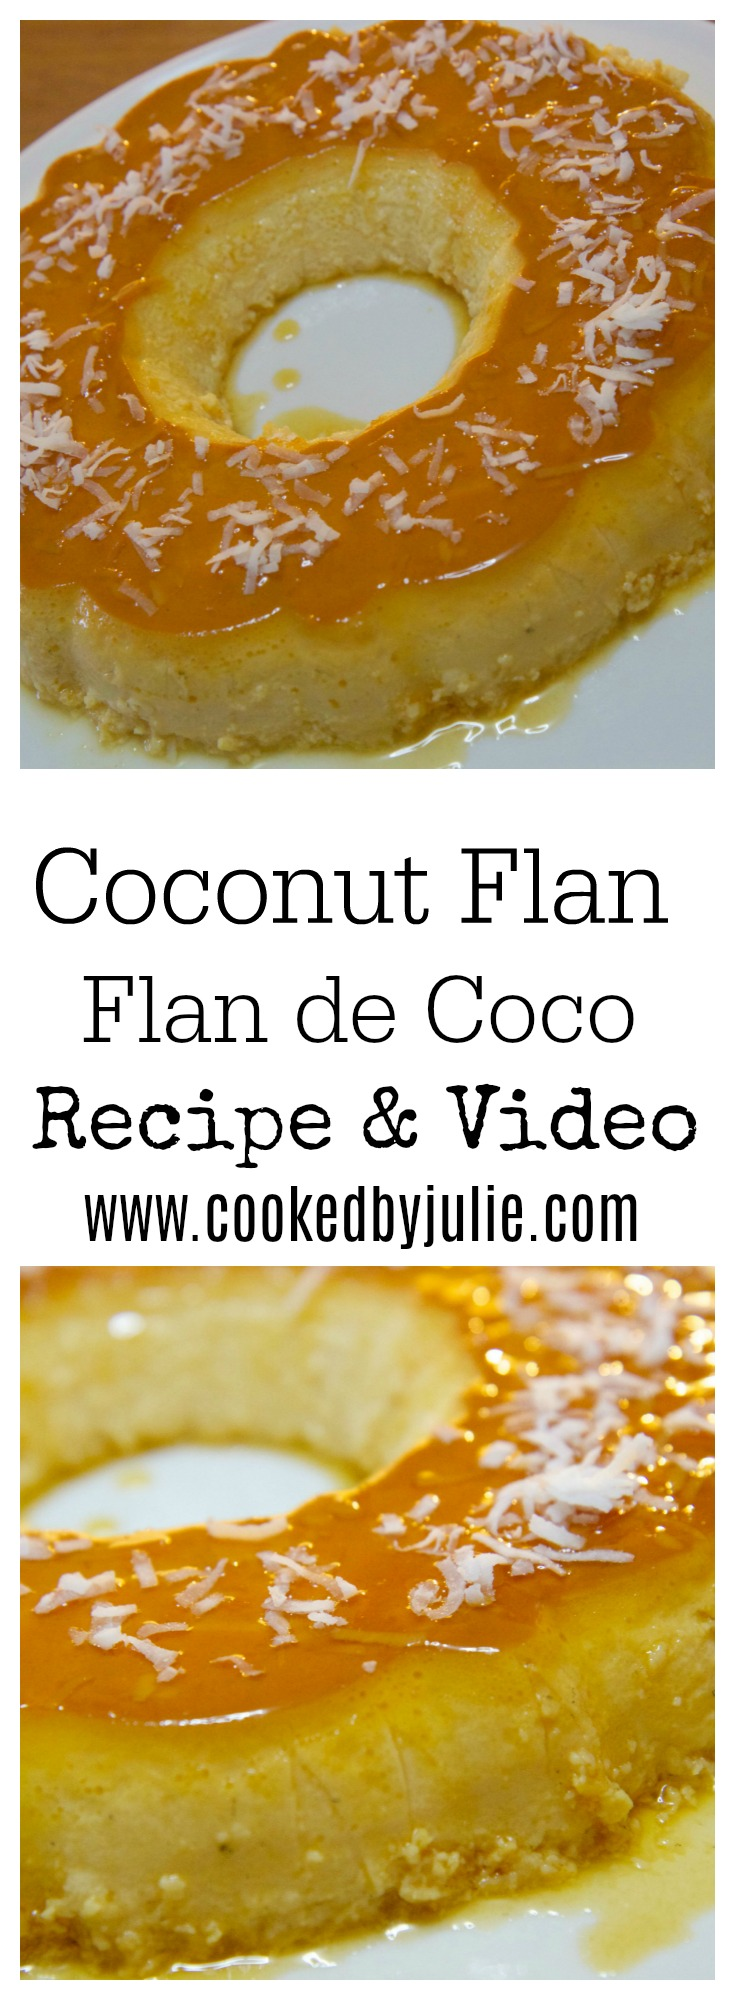 Coconut Flan | Flan de Coco Recipe & Step-by-Step Video from Cooked by Julie